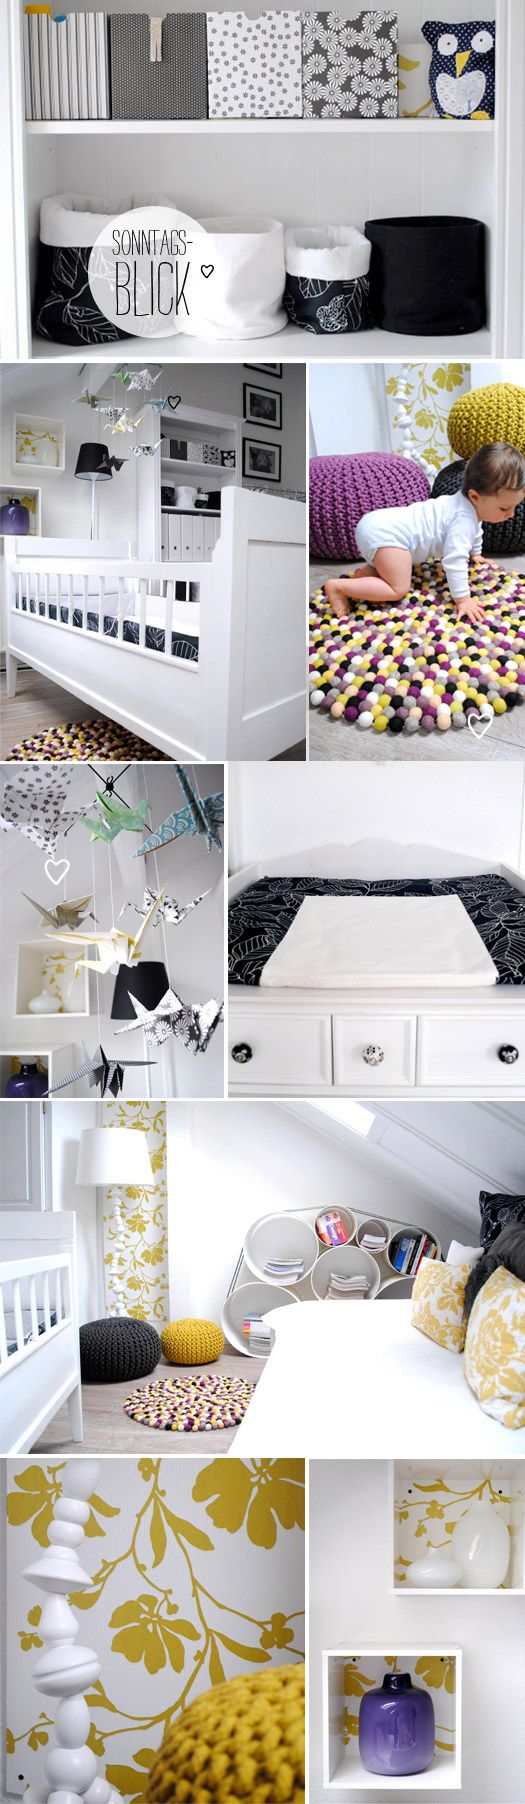 Is The Ikea Farmhouse Sink Good ~   Kinderzimmer auf Pinterest  Bäume, Babyzimmer (Jungen) und Ikea